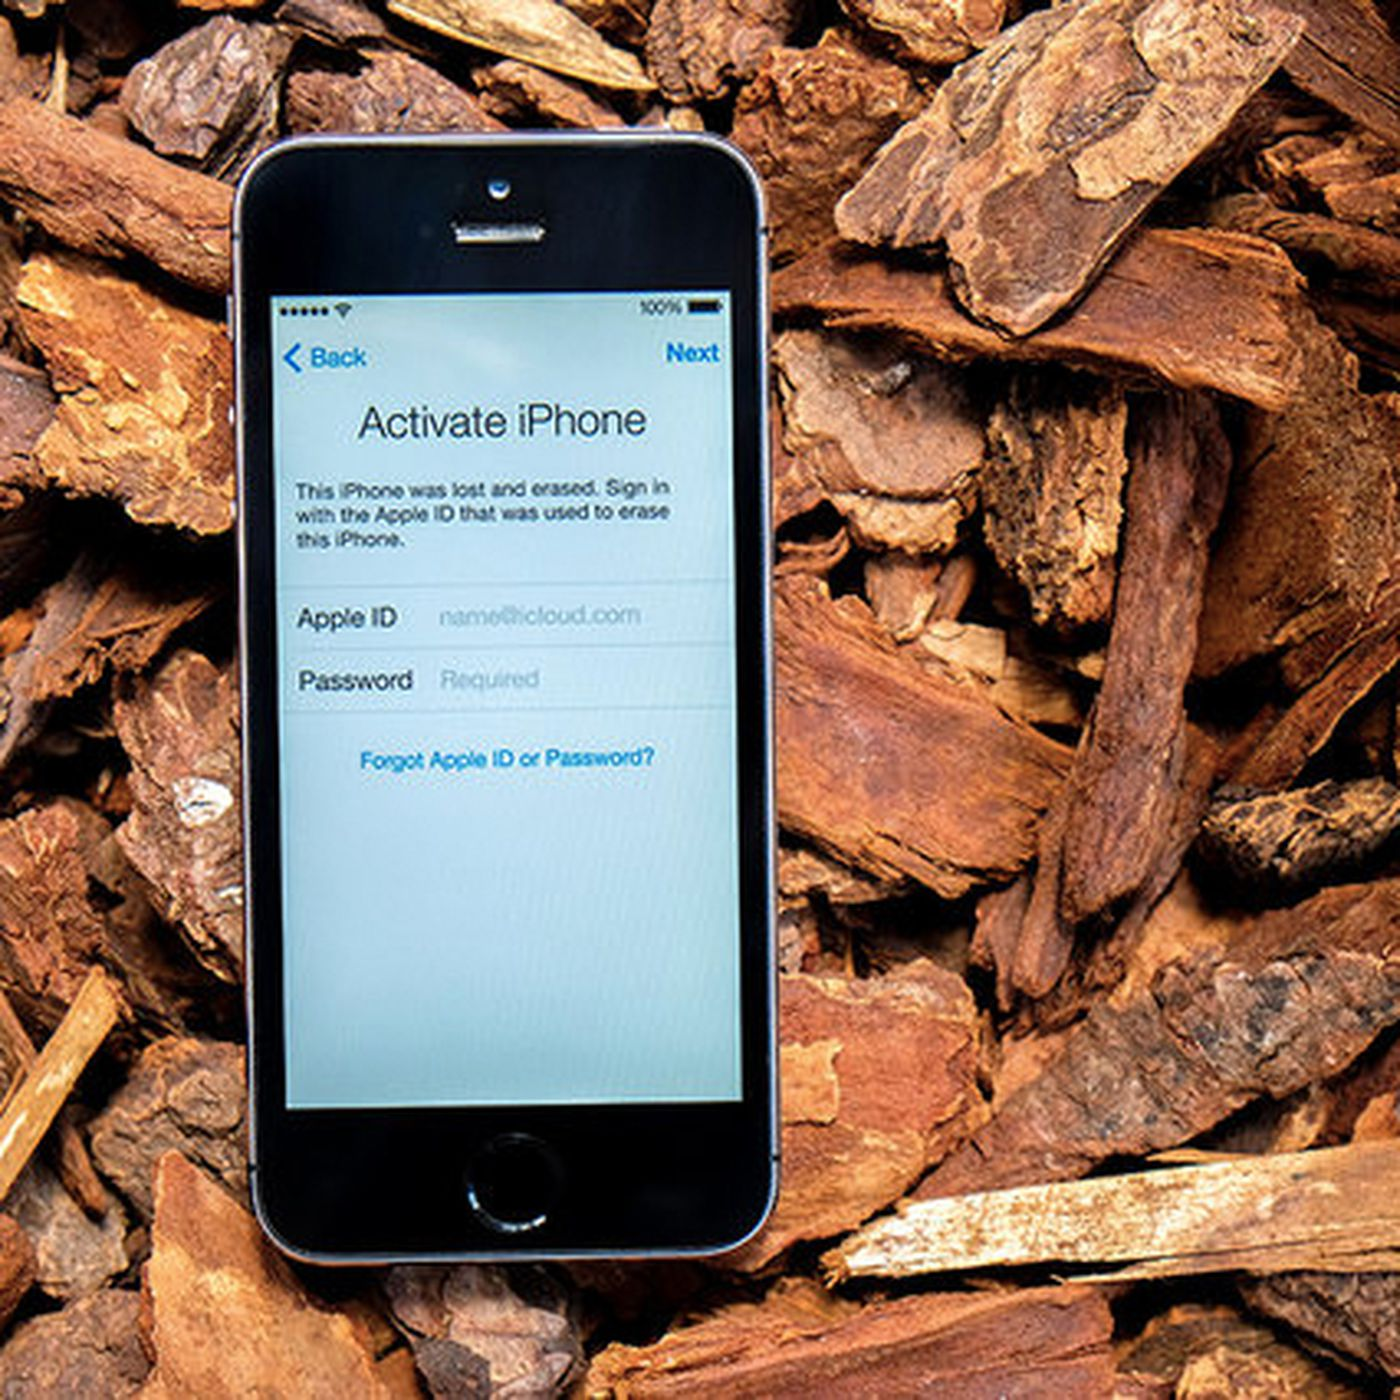 Apple's iPhone lock stops thieves, but has unintended